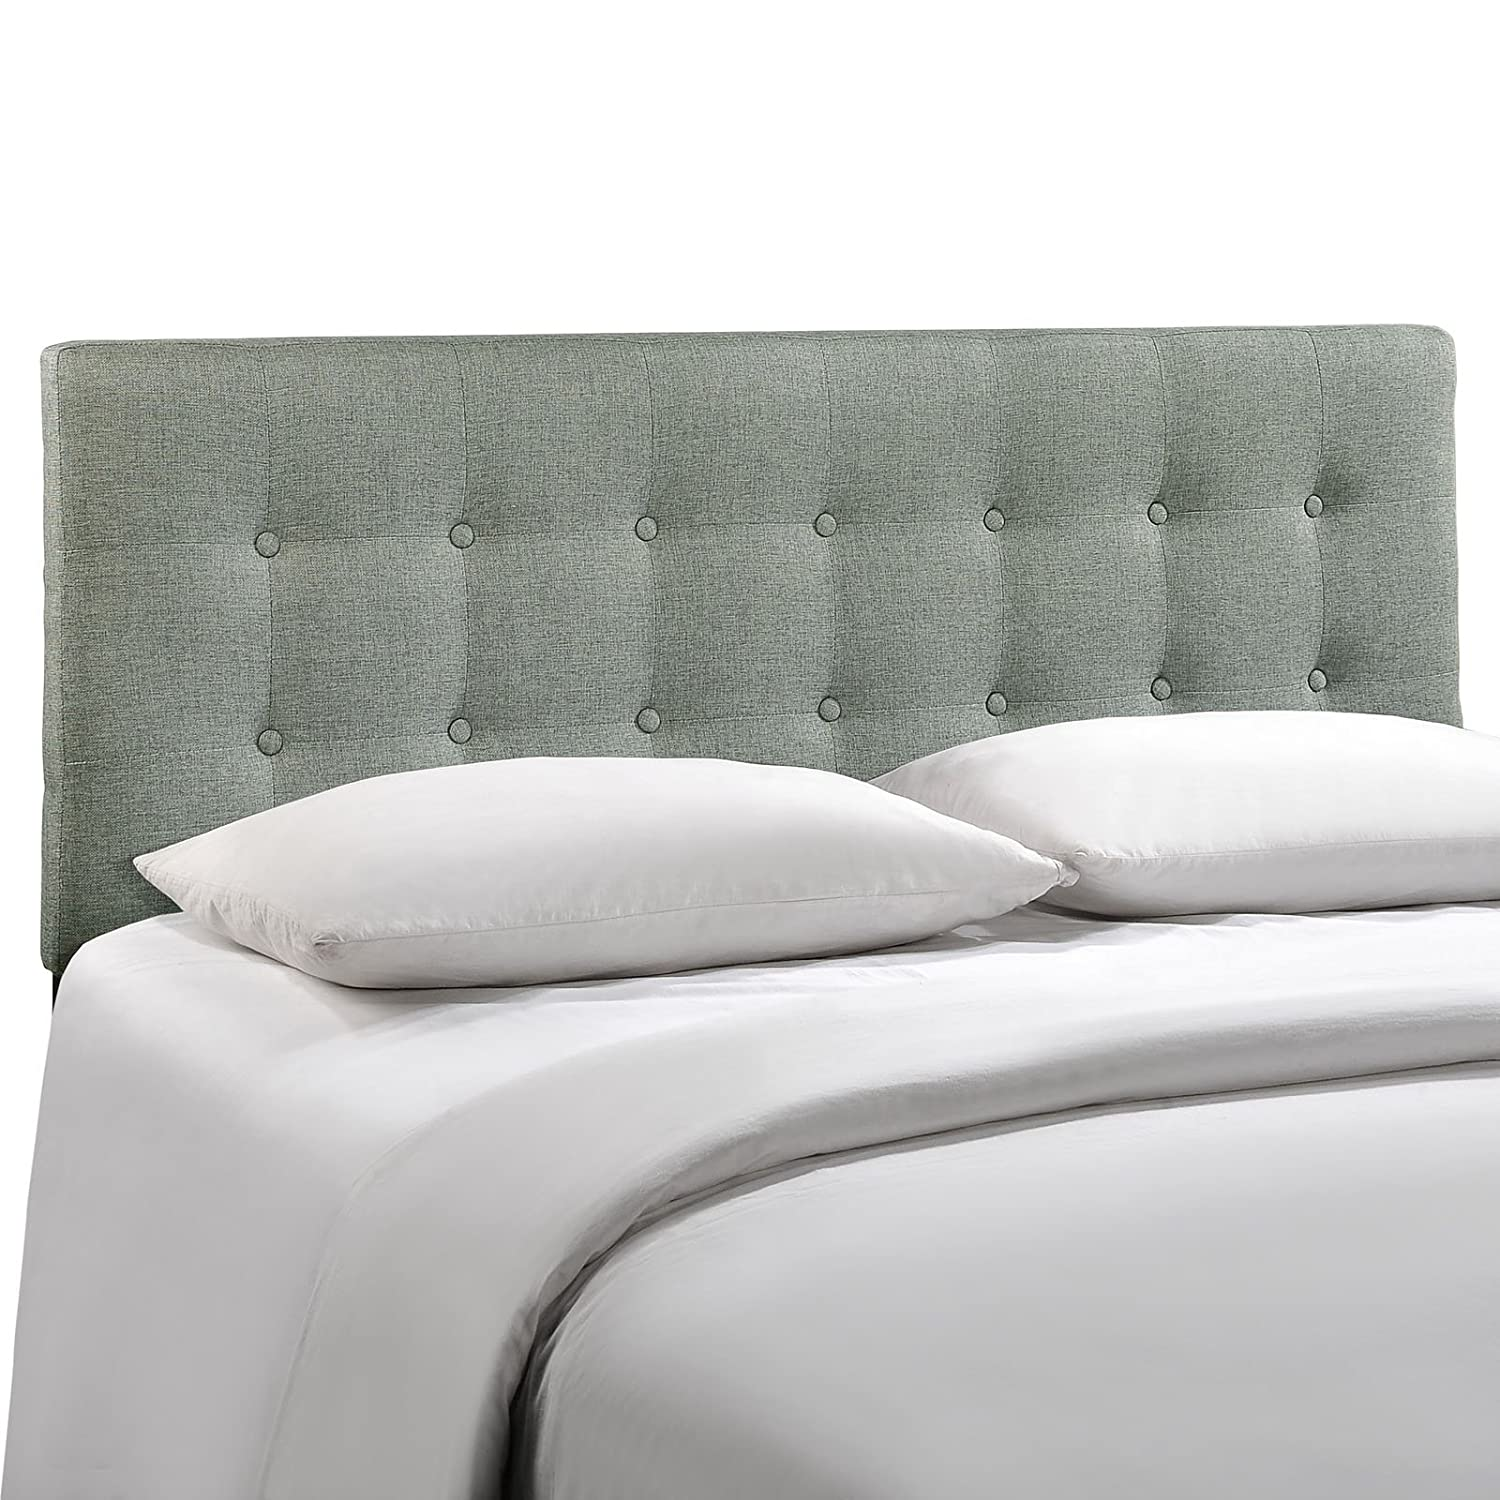 Amazon.com: Modway Emily Upholstered Tufted Button Fabric Full Size  Headboard In Gray: Kitchen & Dining - Amazon.com: Modway Emily Upholstered Tufted Button Fabric Full